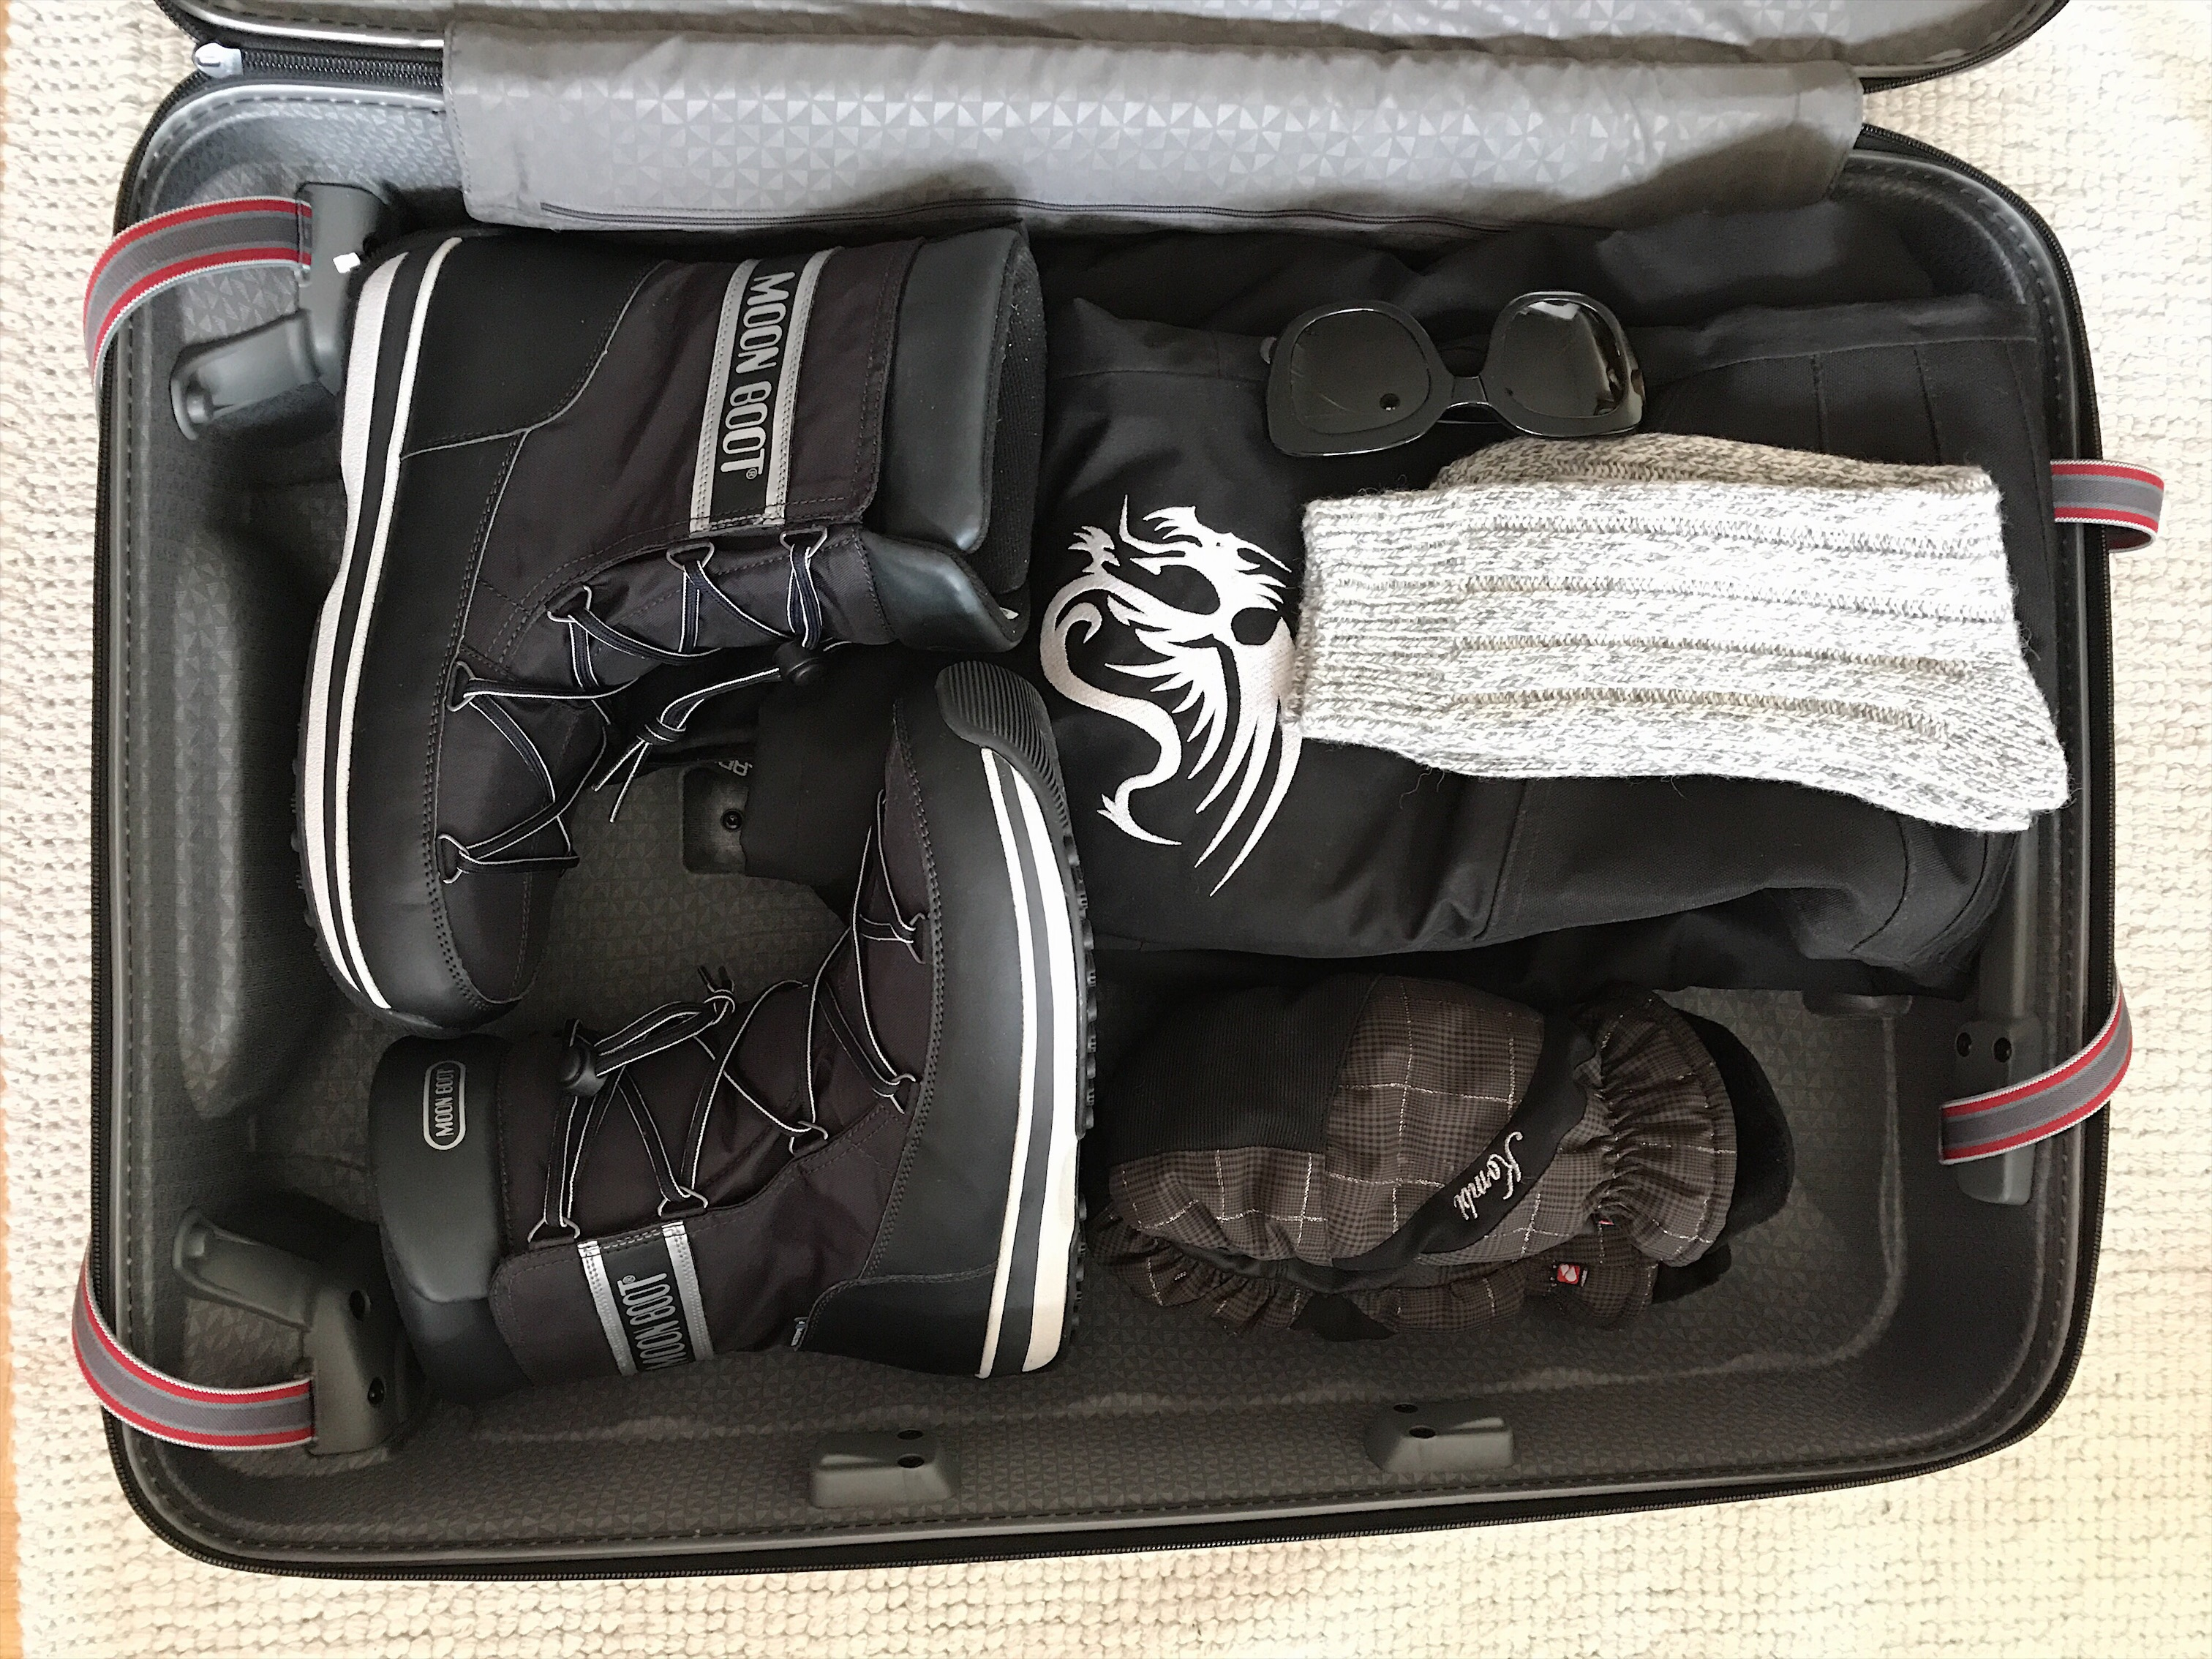 Packing for the coolest destintion